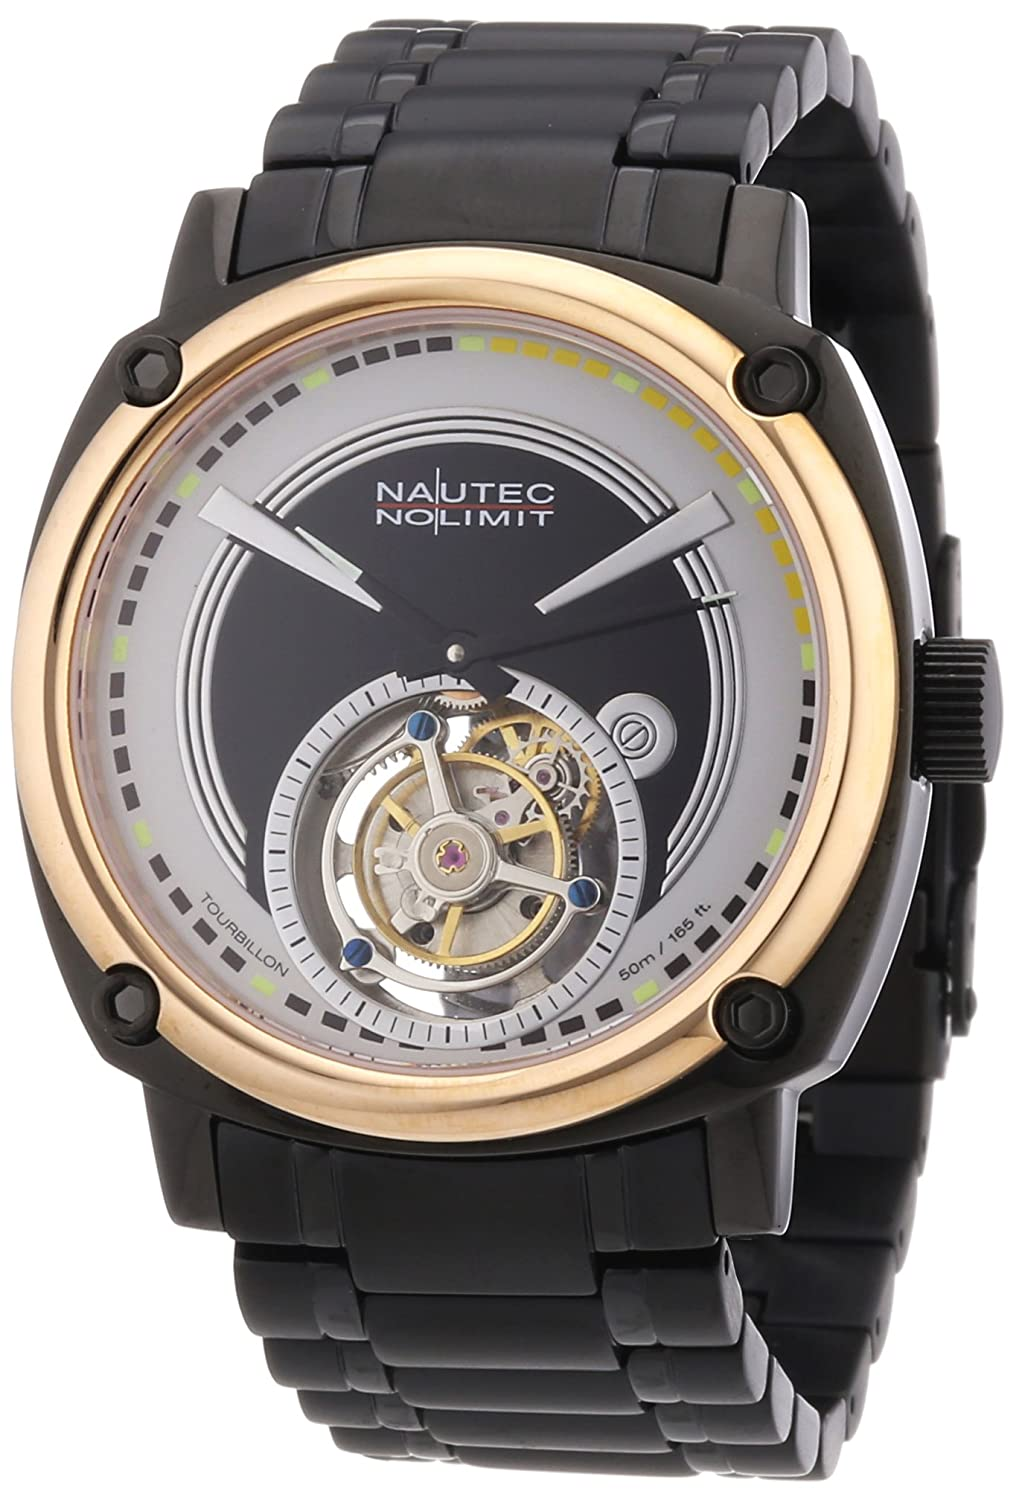 Nautec No Limit Victory Tourbillon - Reloj analógico de caballero manual con correa de acero inoxidable negra - sumergible a 50 metros